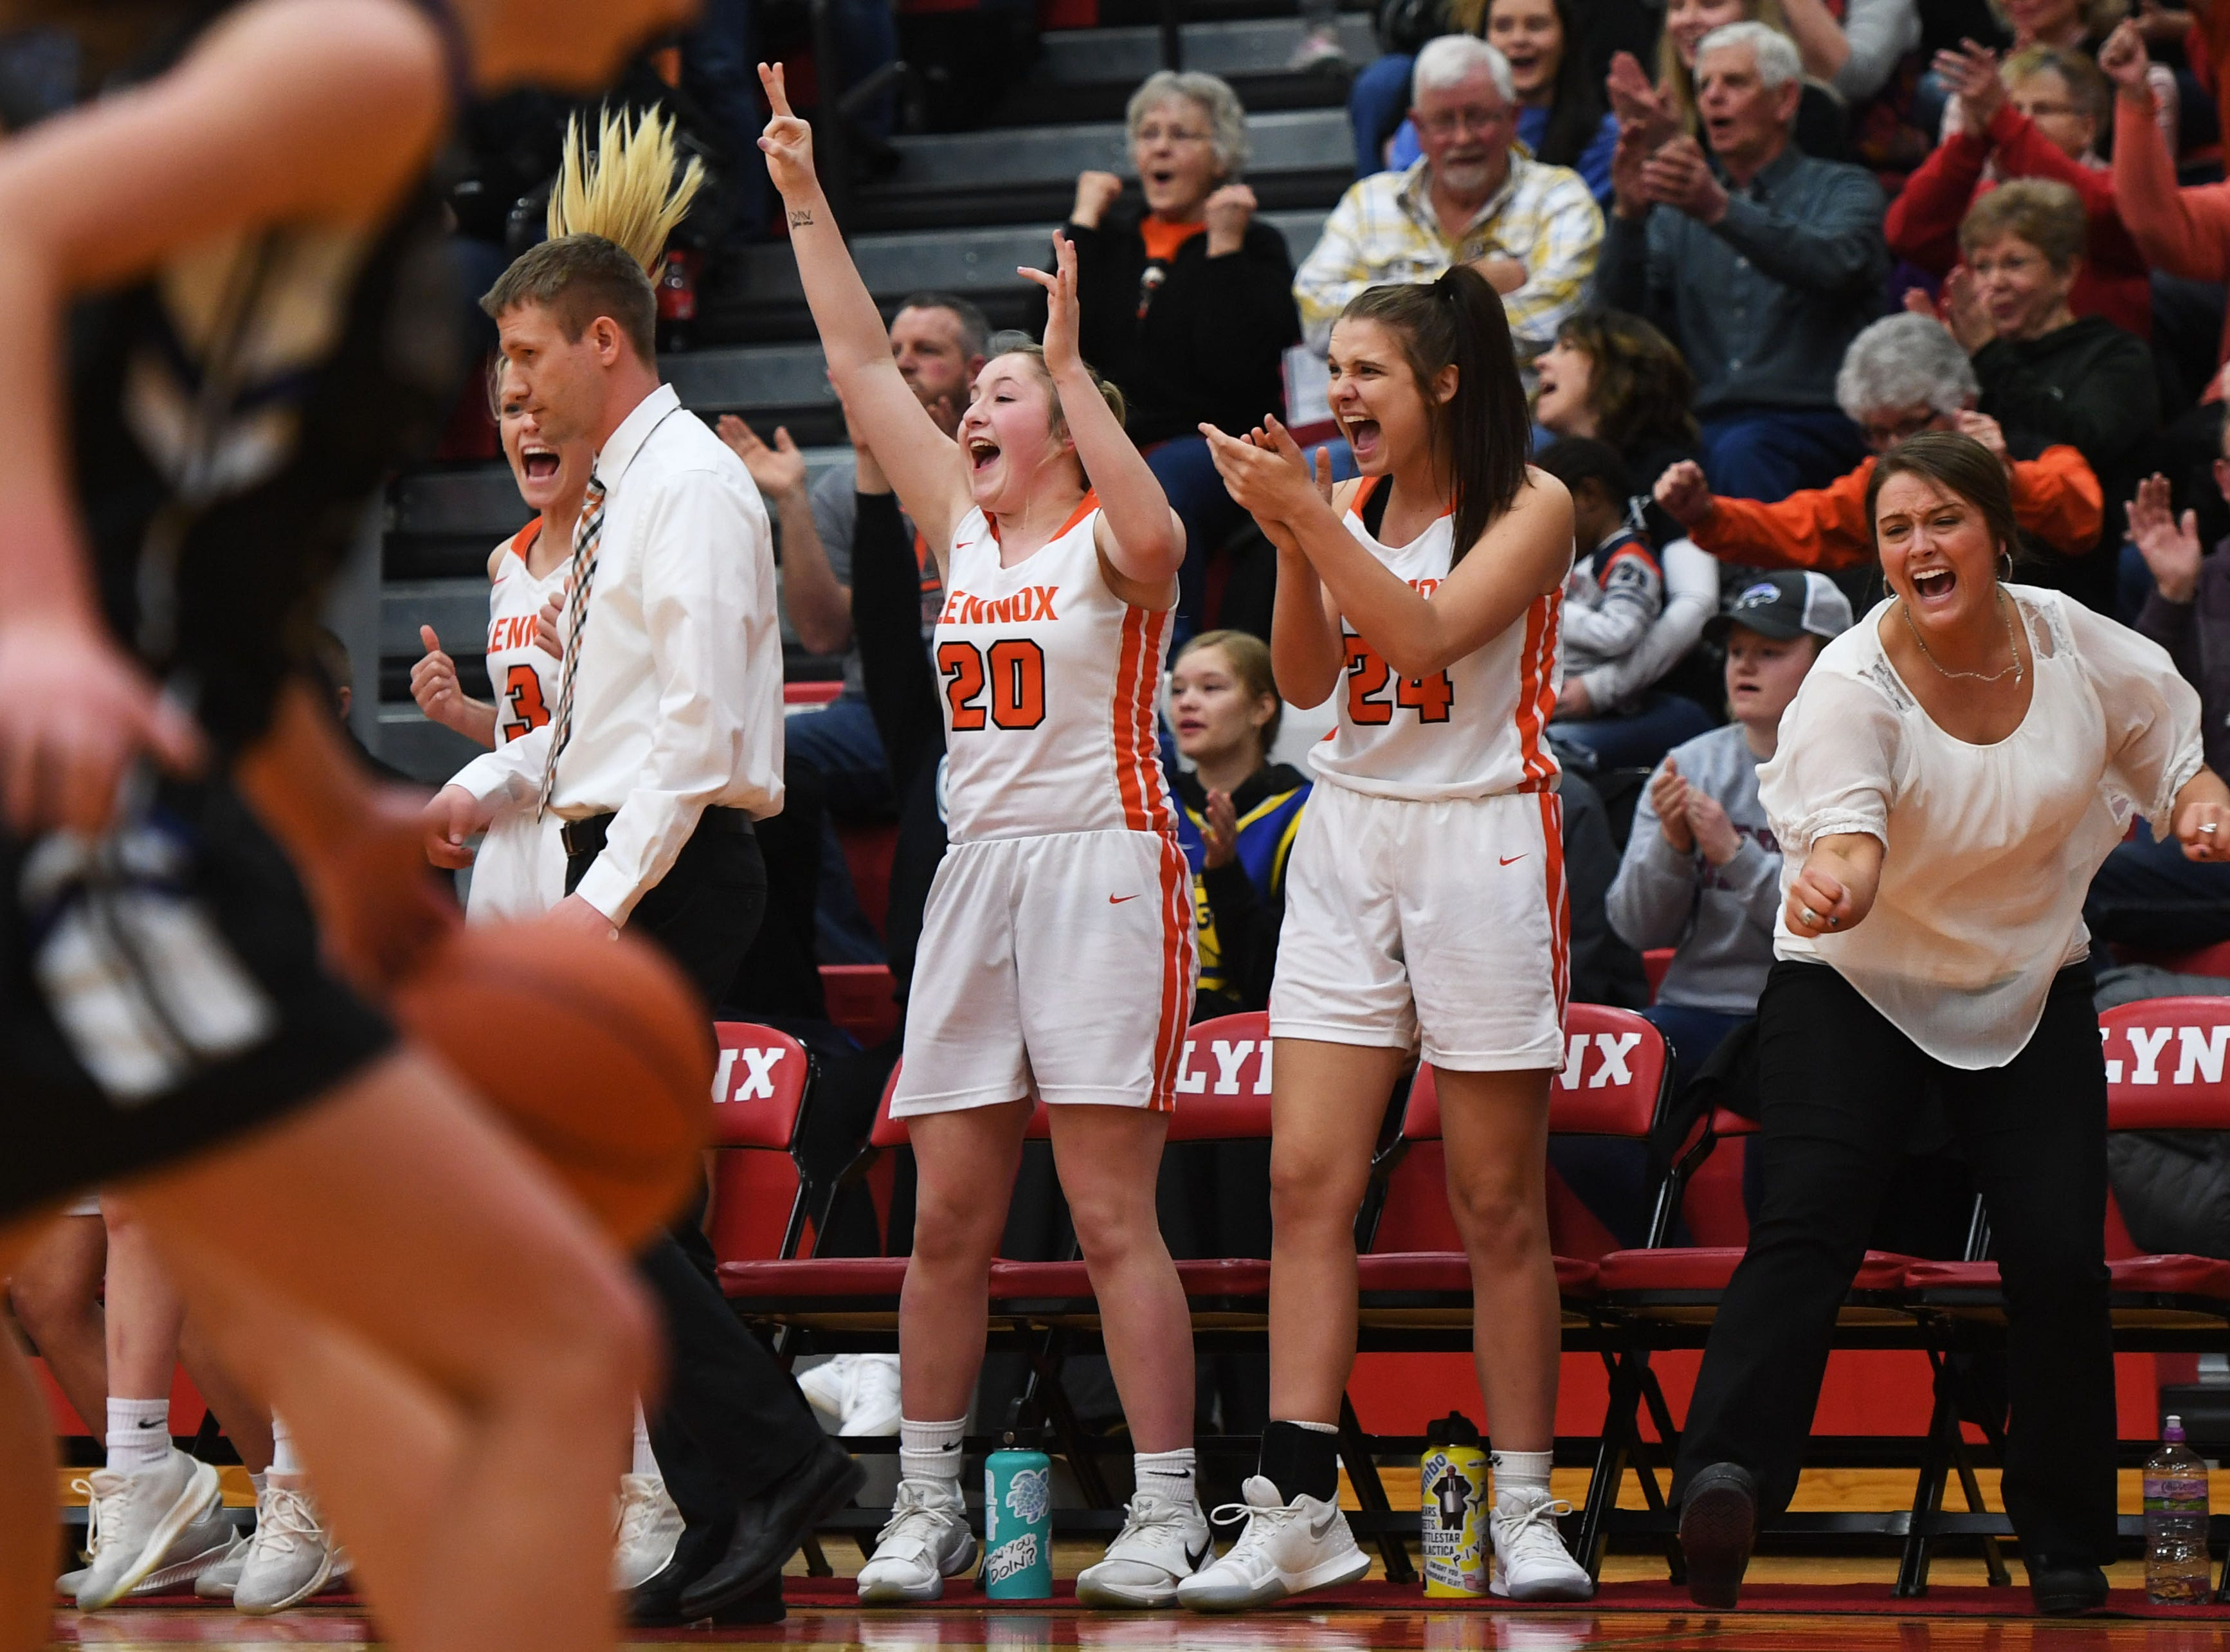 Lennox's sideline during the game against Sioux Falls Christian Thursday, March 7, at Brandon Valley High School in Brandon Valley.